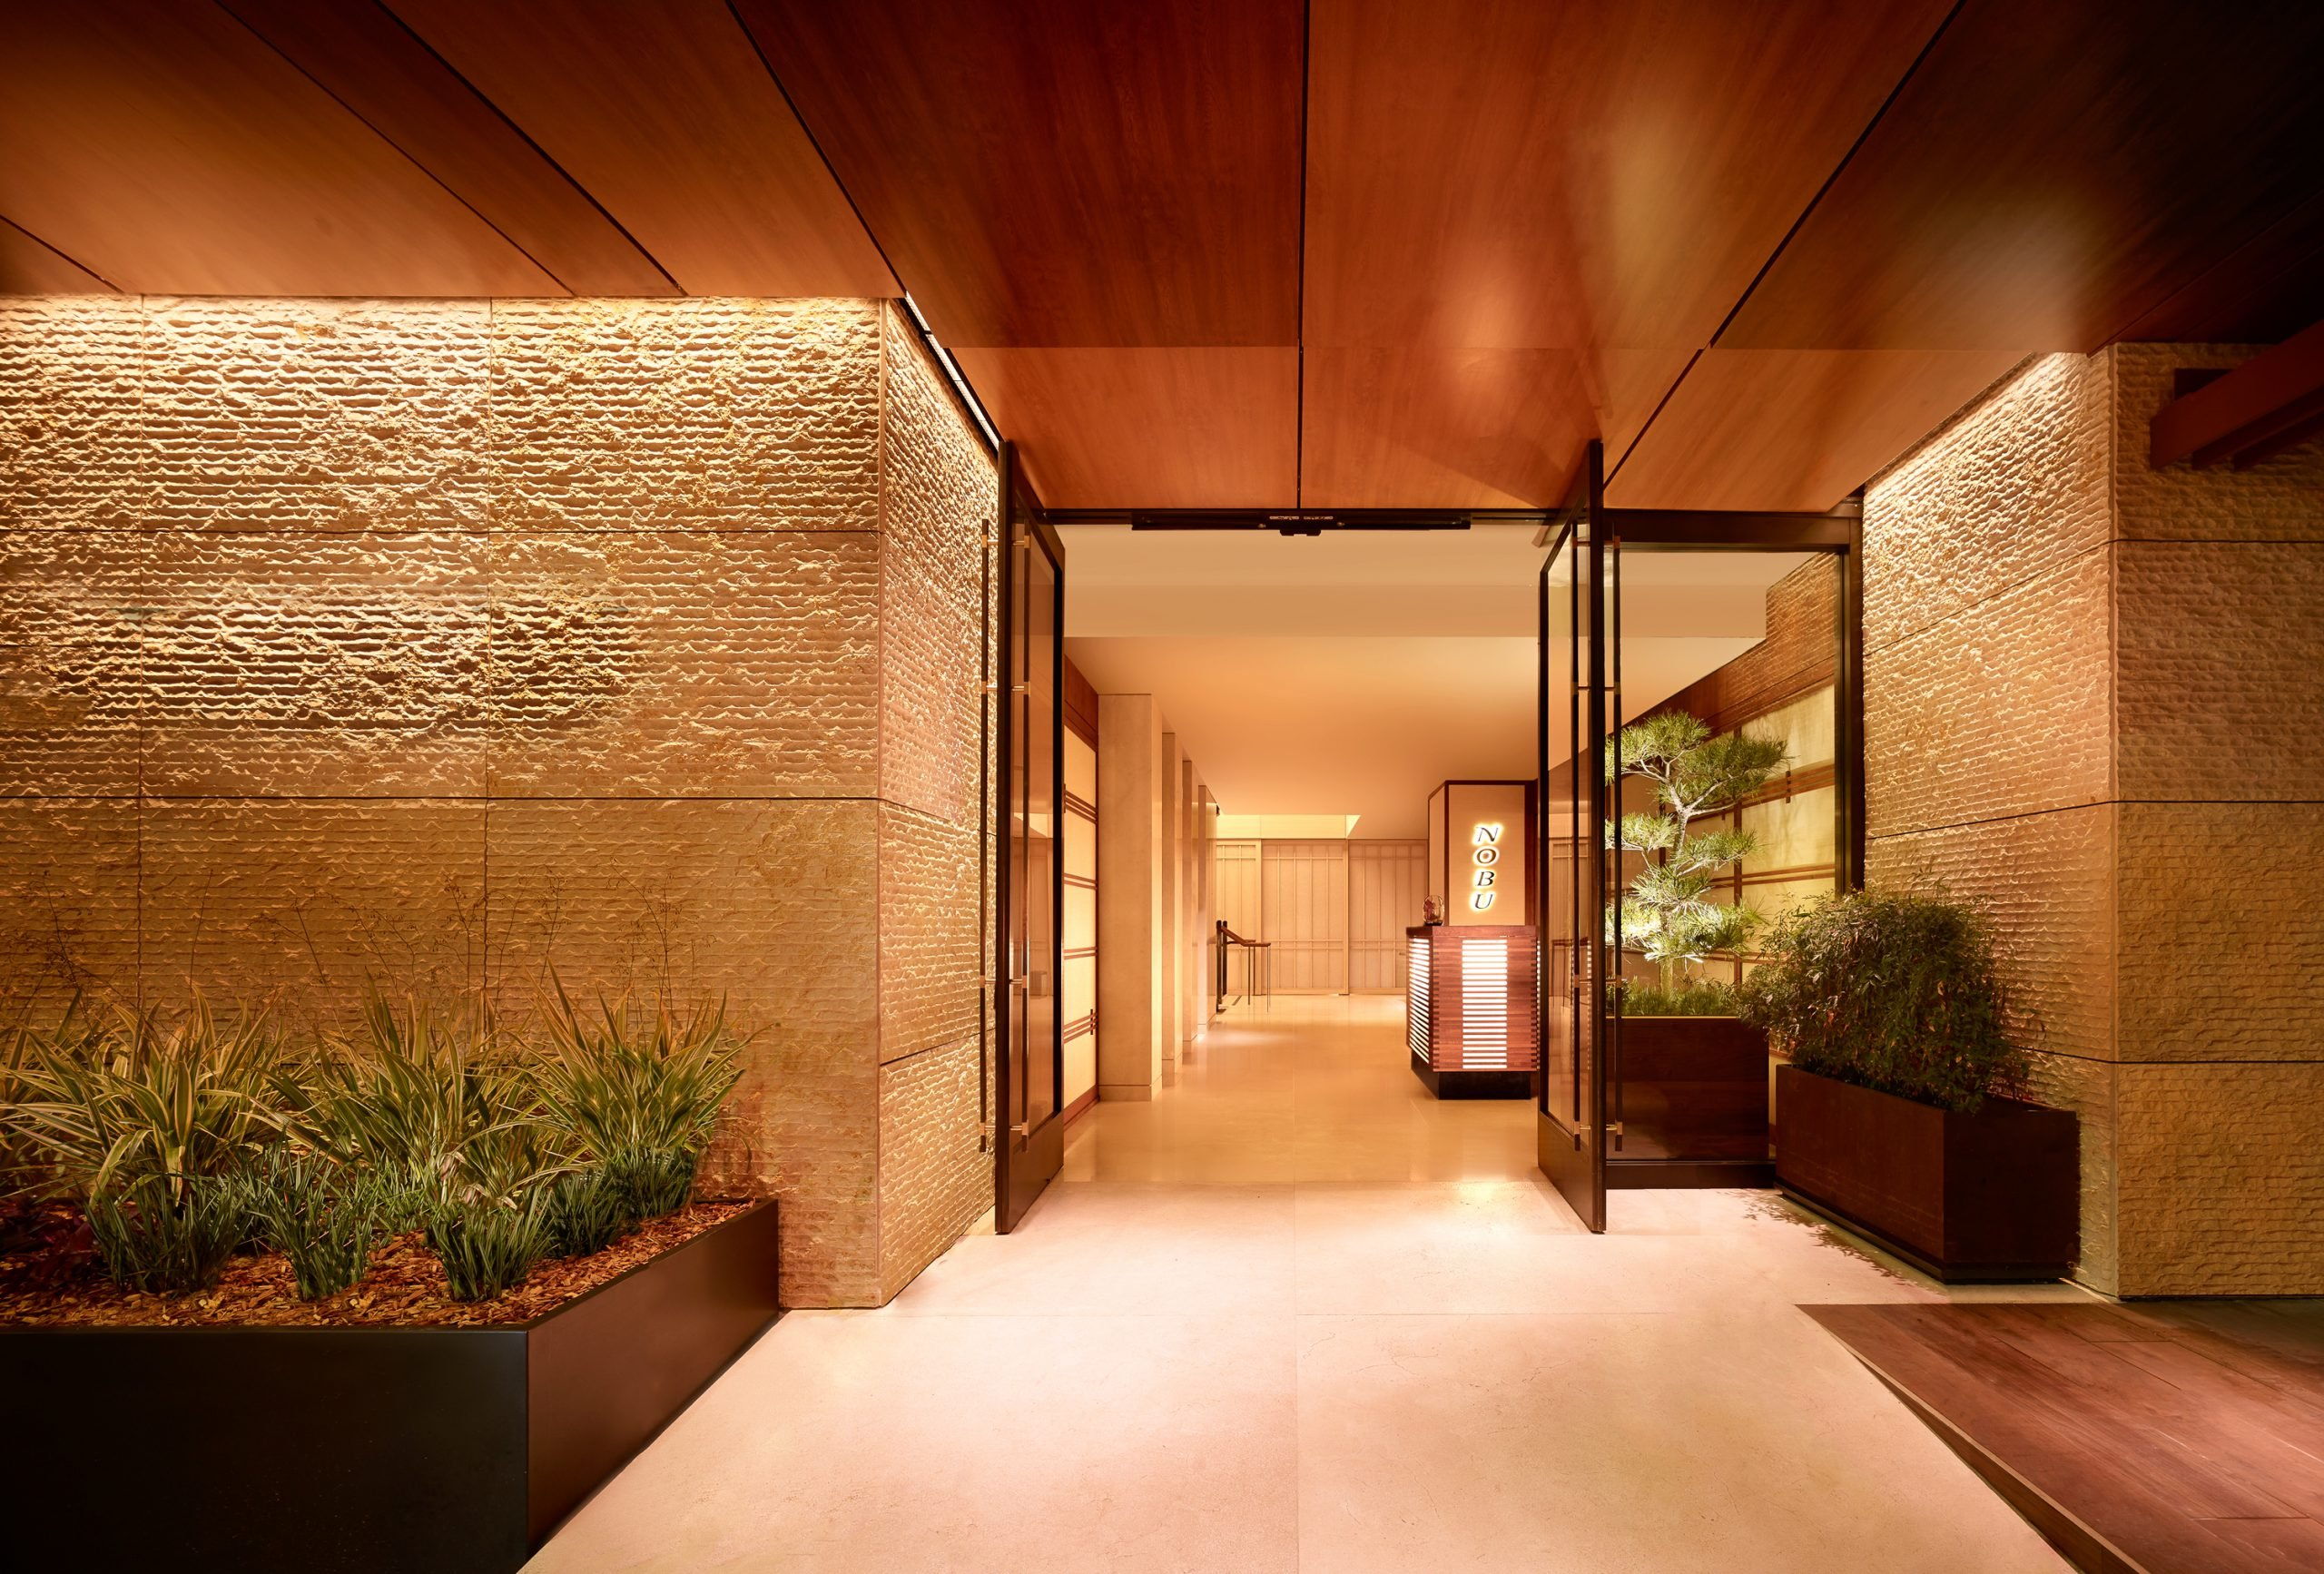 entrance to Nobu with glass doors and wooded ceiling